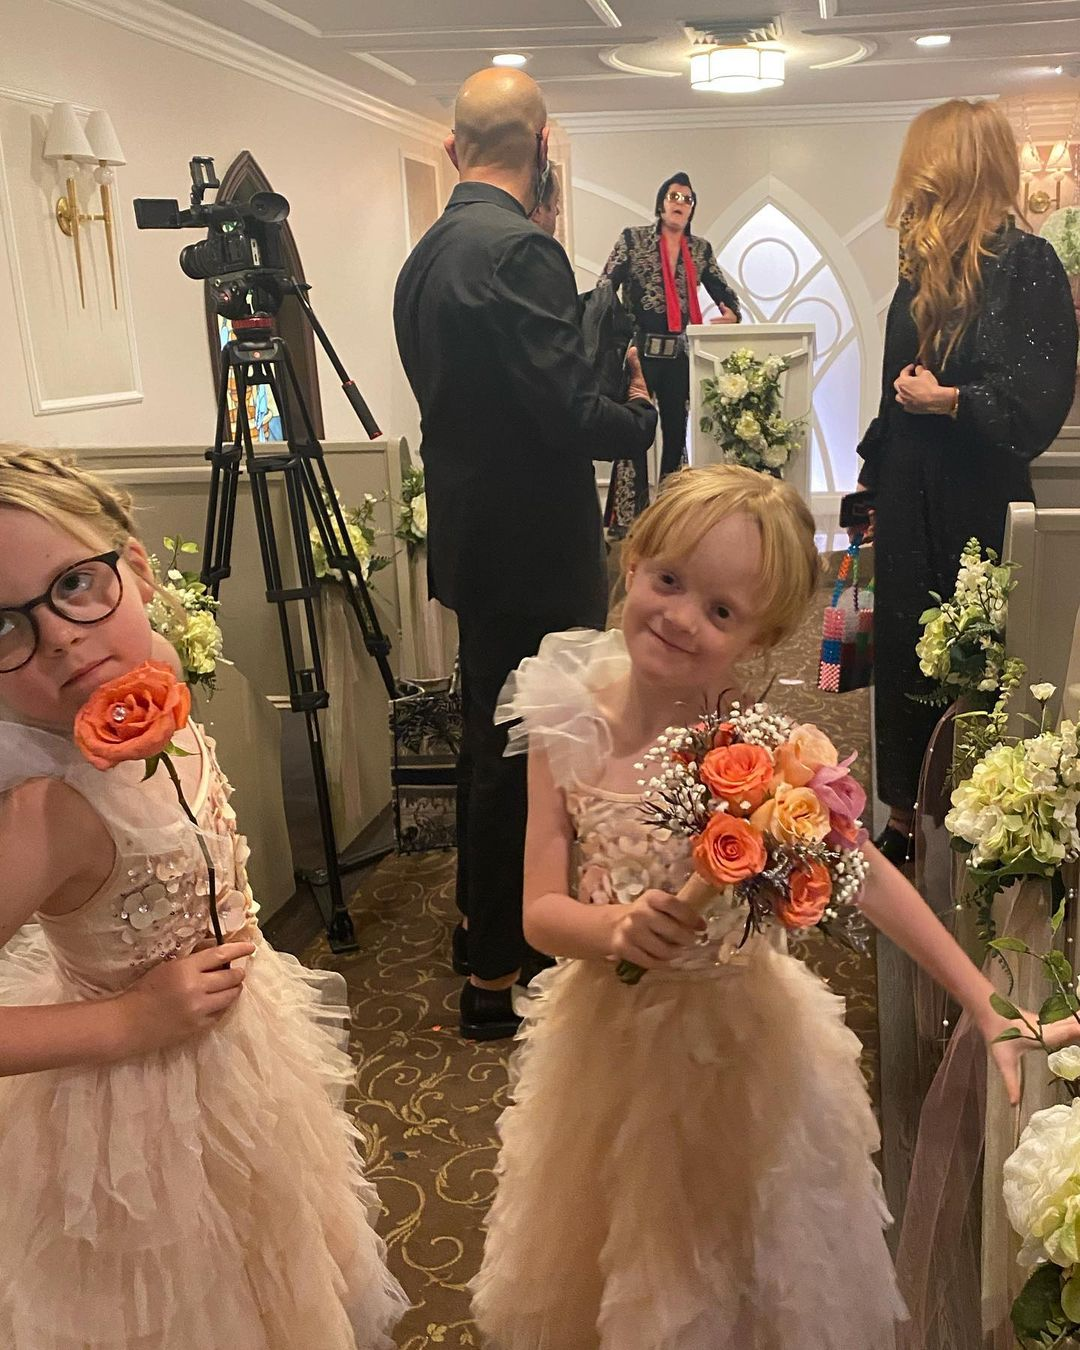 Lily Allen shares photos of daughters Ethel and Marnie taken at her Las Vegas wedding in September 2020.